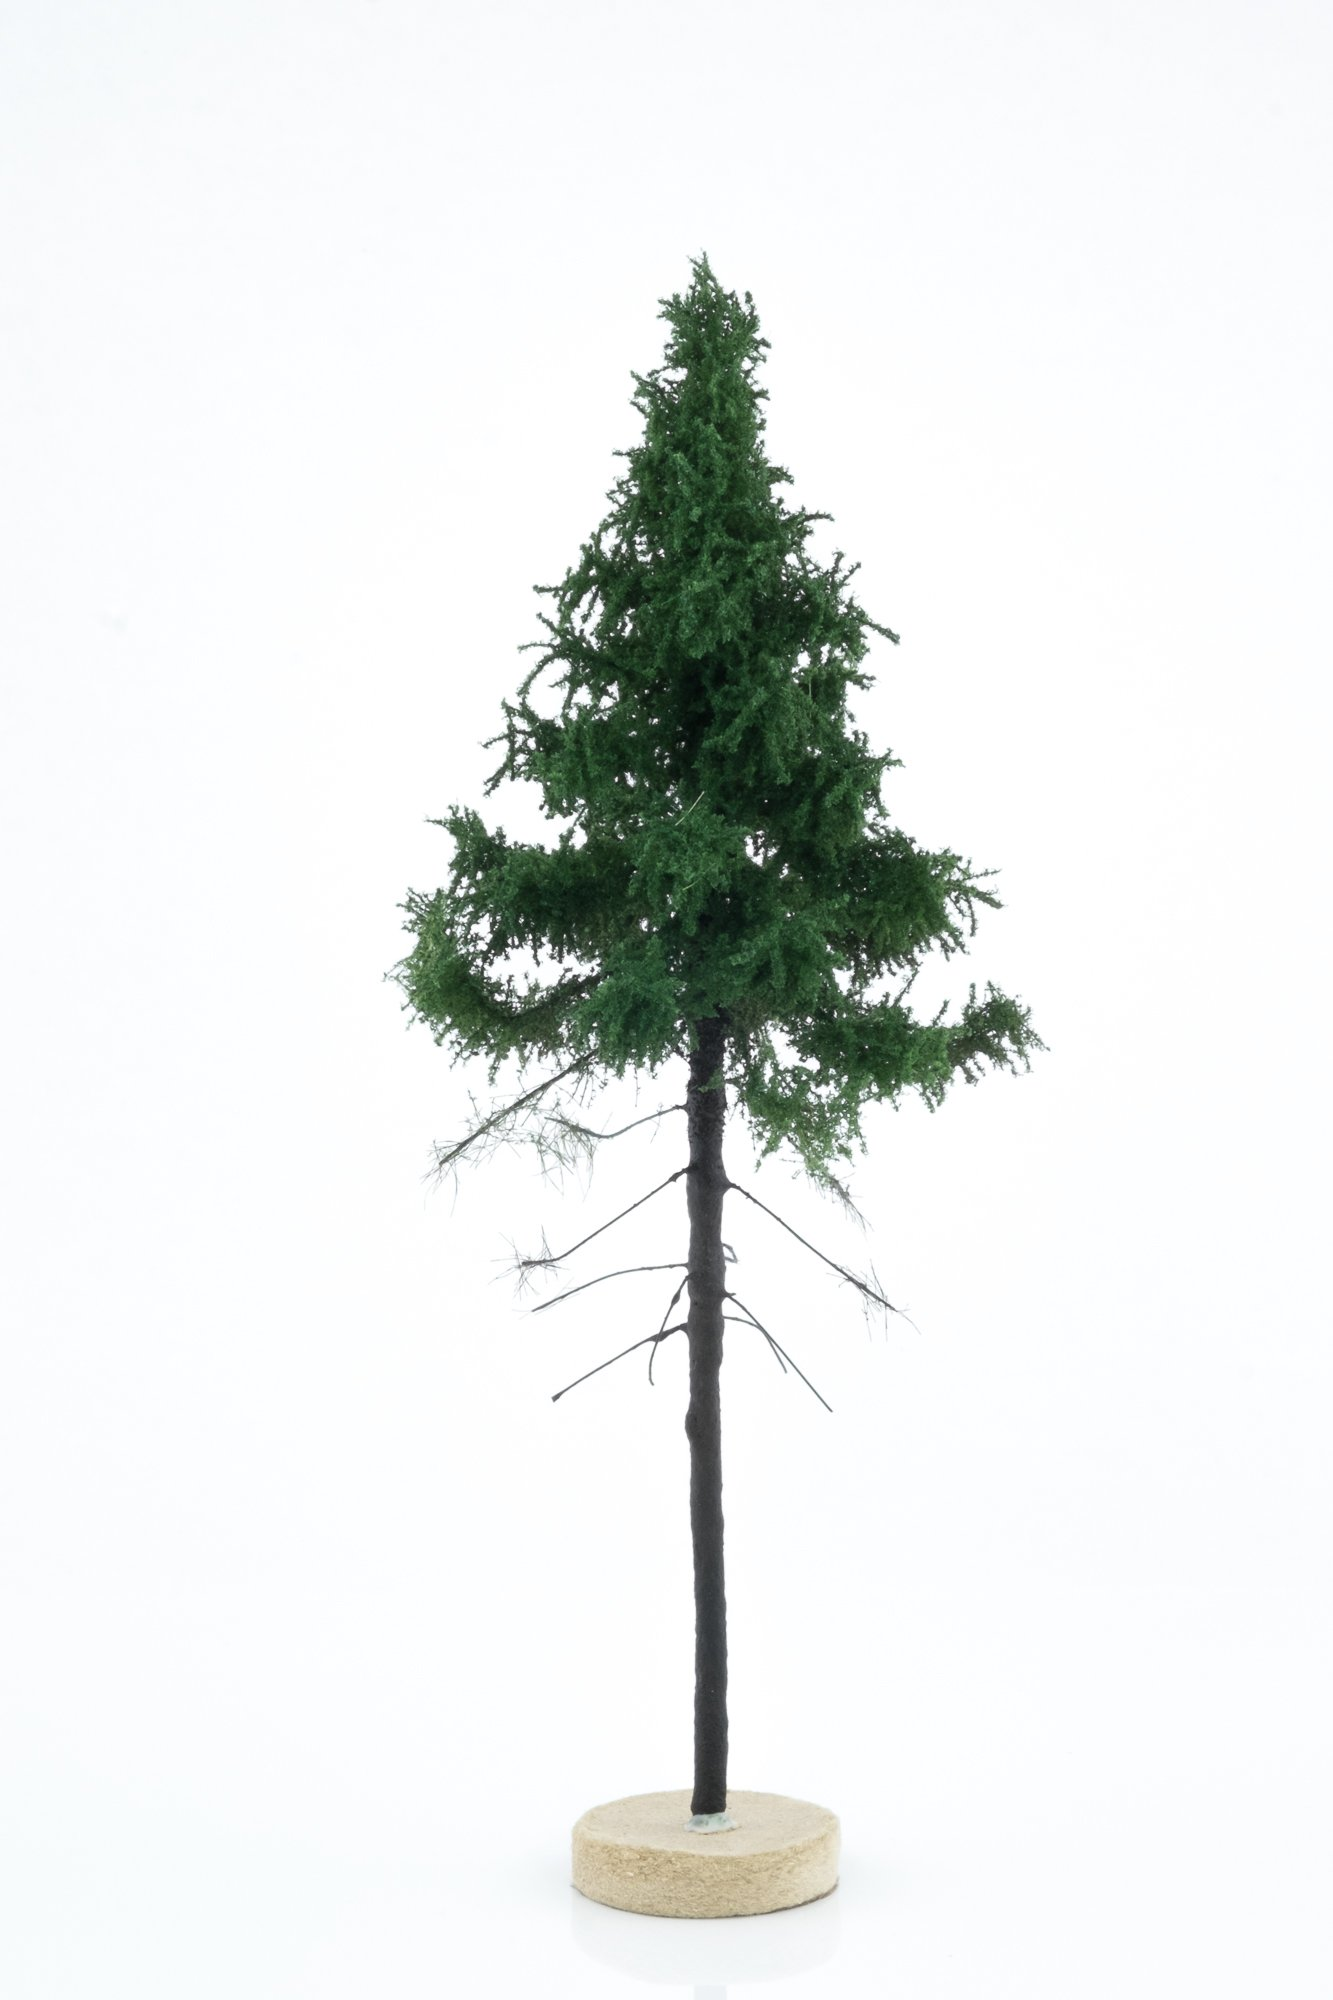 Hand-made, green, forest spruce tree model. Size between 18 and 20 cm. Made from high quality model supplies by Primo Models.